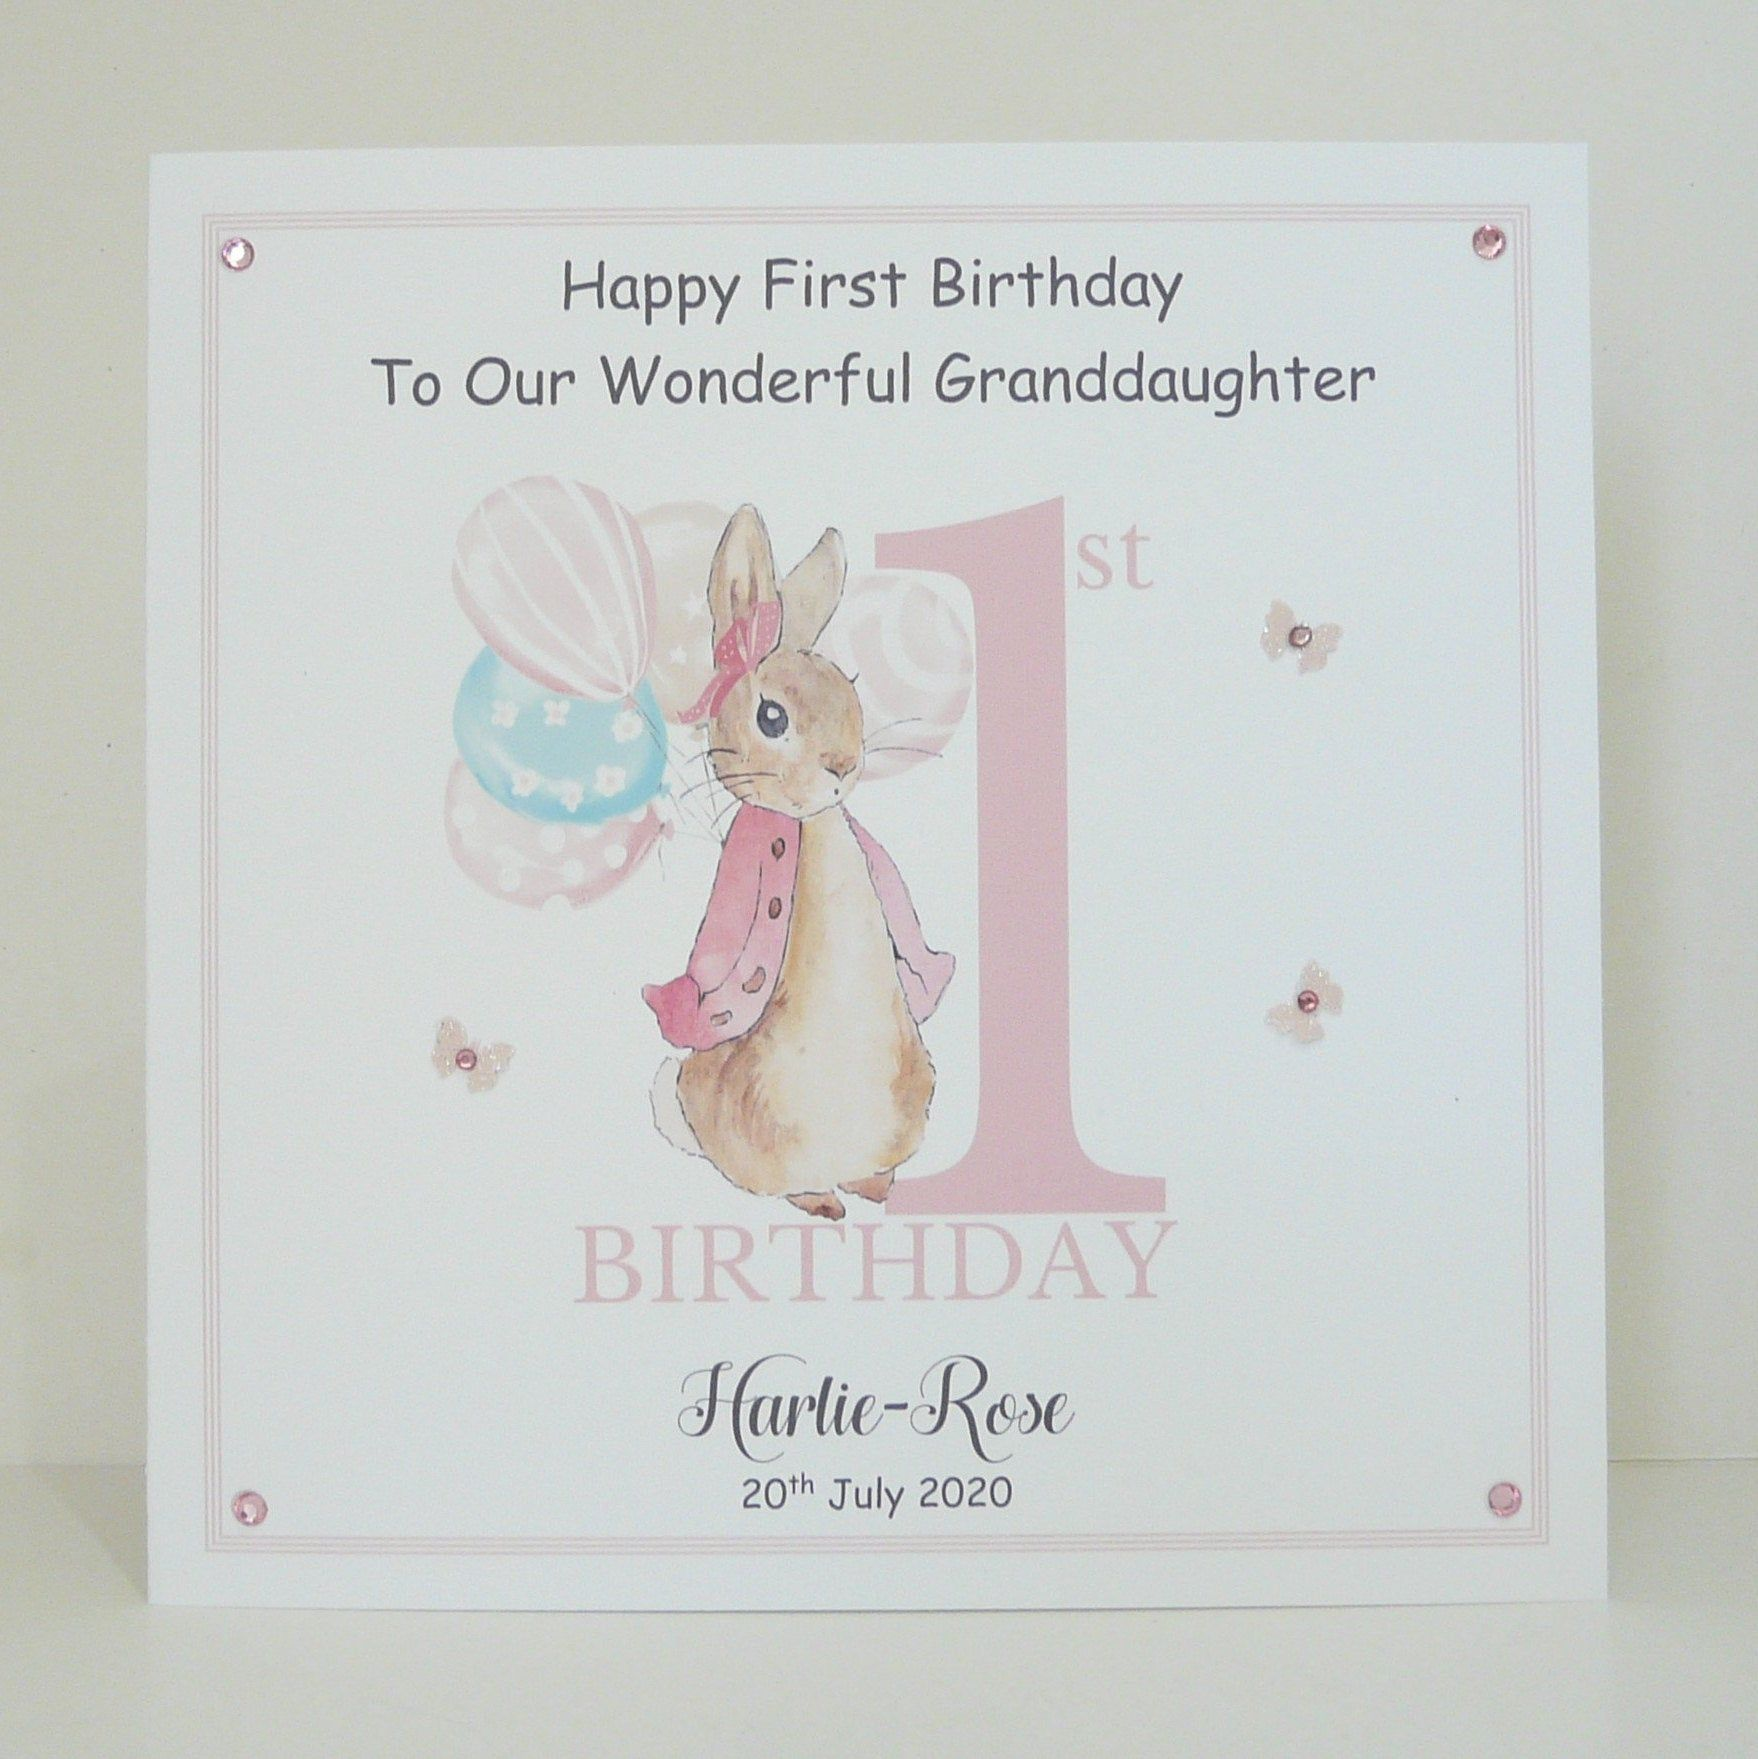 1st Birthday Card 8x8 Inches Peter Or Flopsy Rabbit Large Etsy 1st Birthday Cards First Birthday Cards Birthday Cards